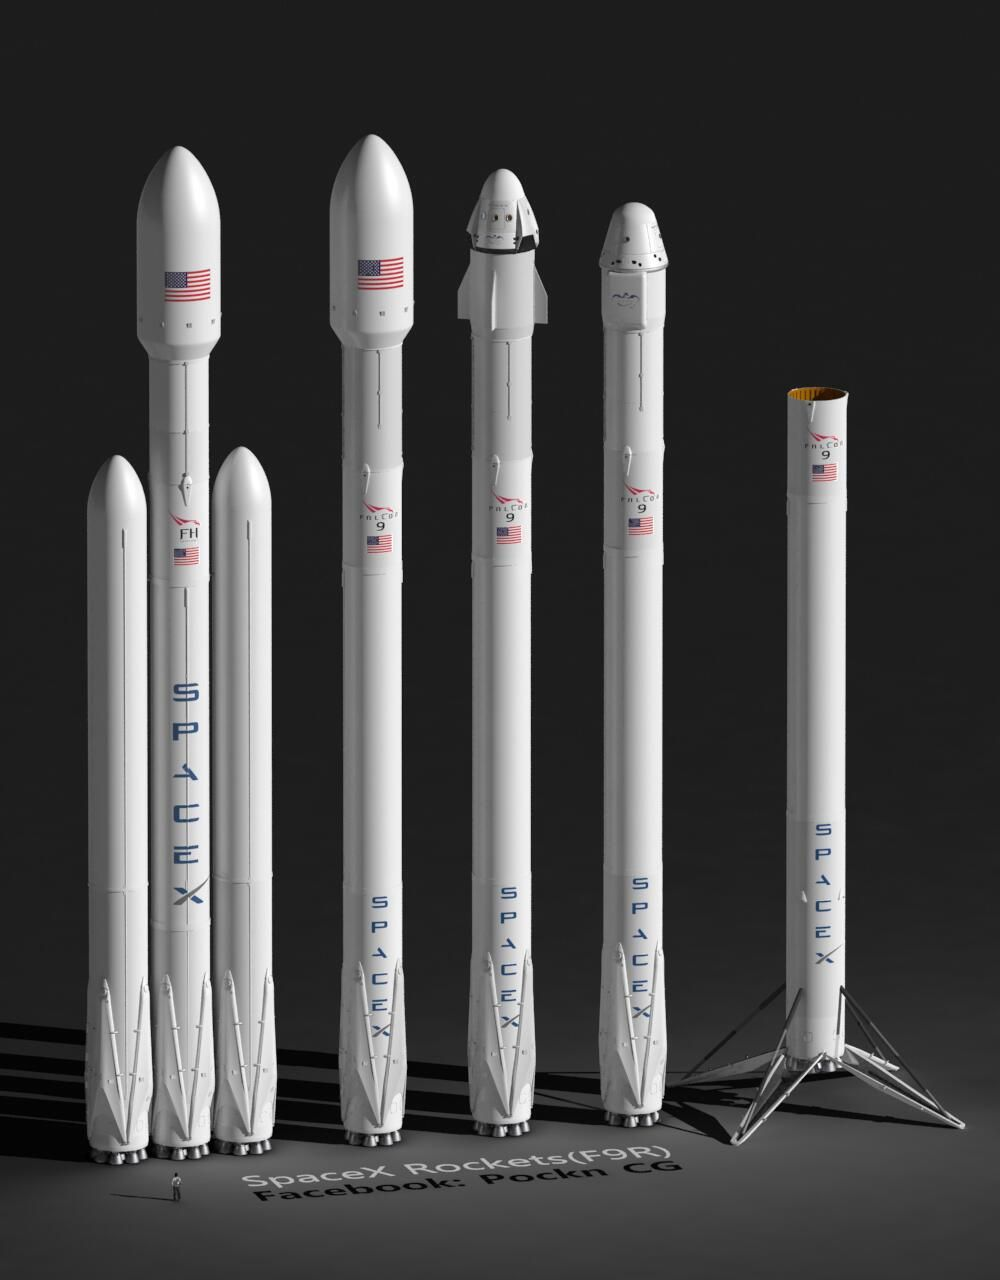 rockets spacex falcon heavy f9r fairing 5 2m f9r